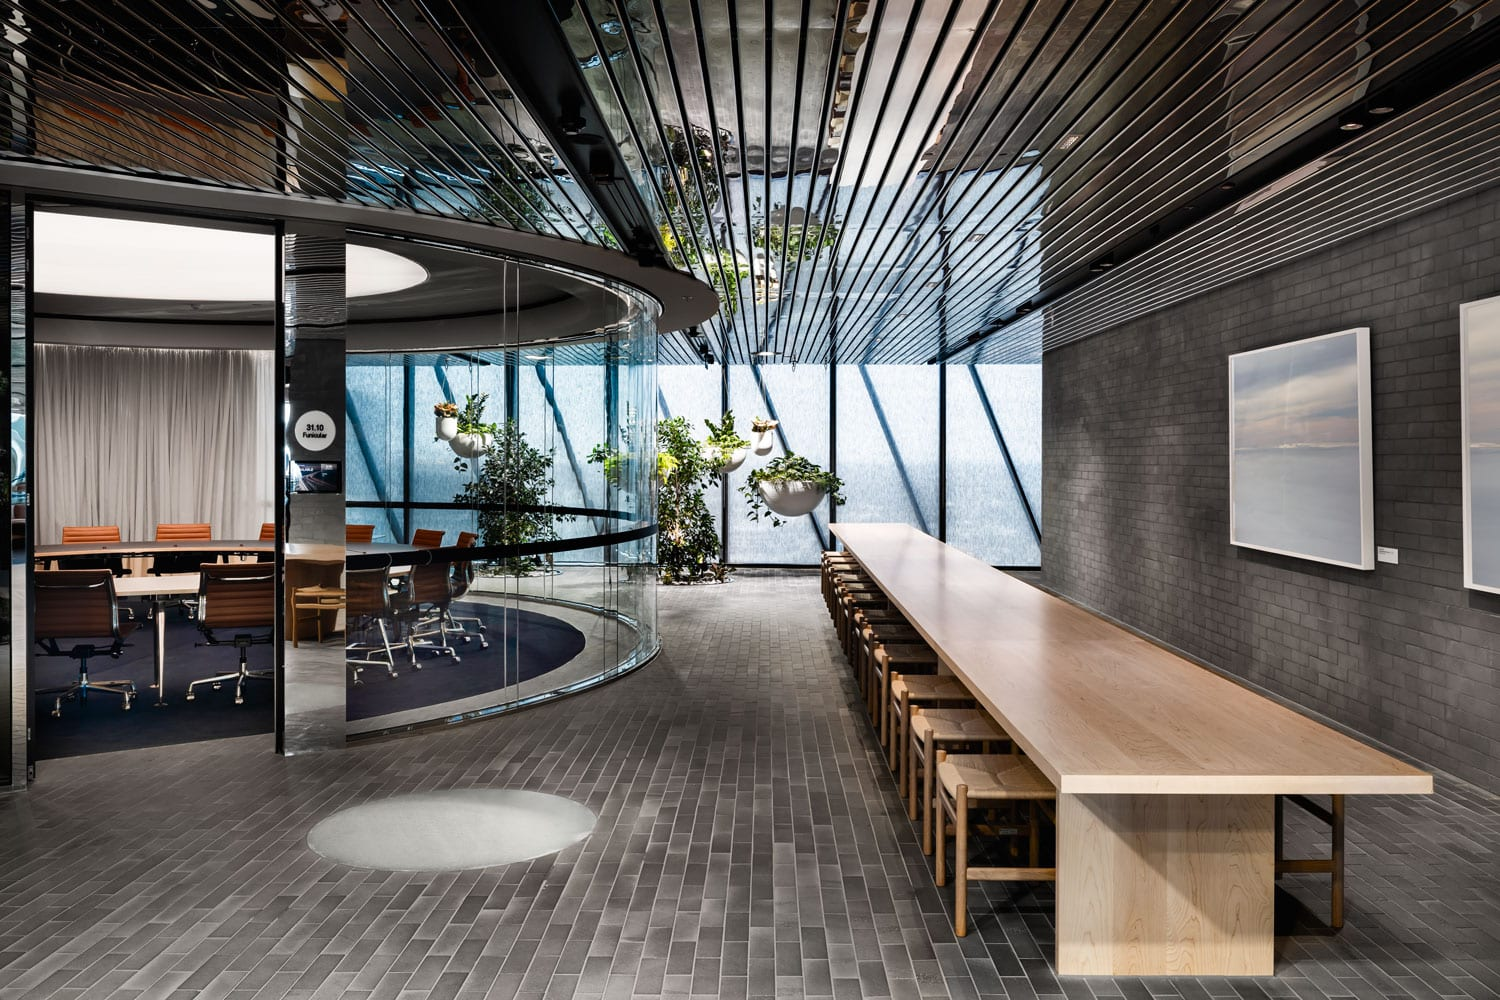 Transurban Melbourne HQ by Hassell